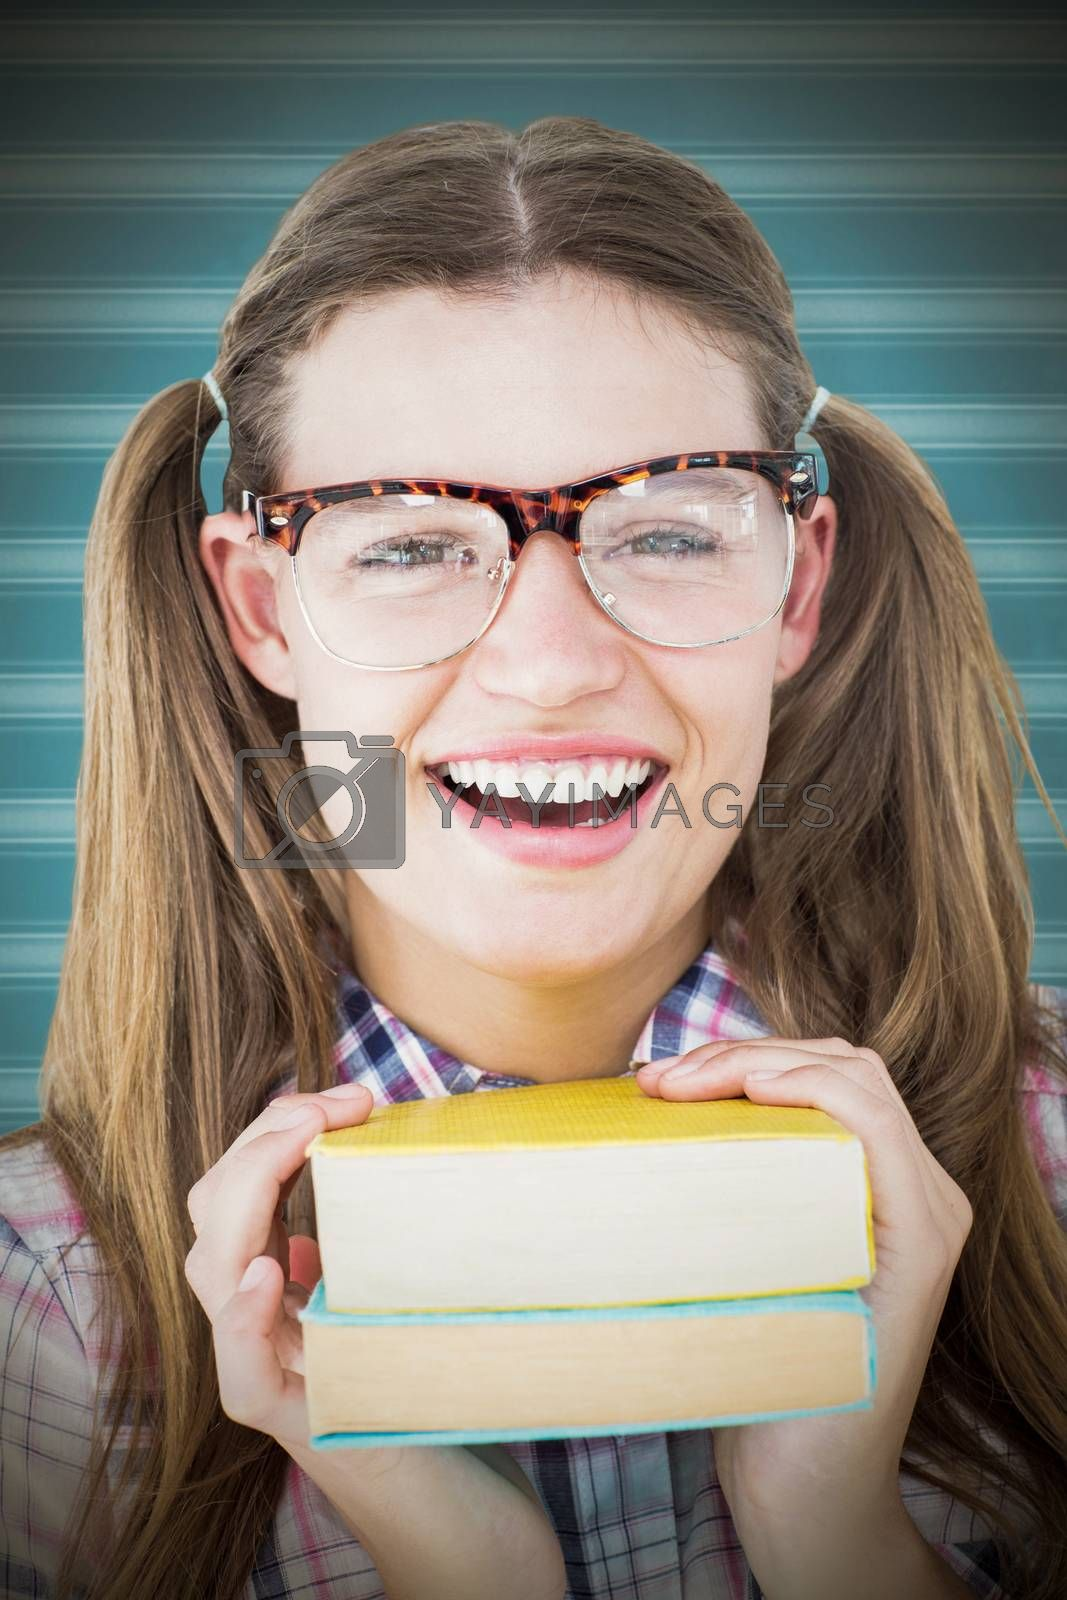 Geeky hipster smiling at camera against background